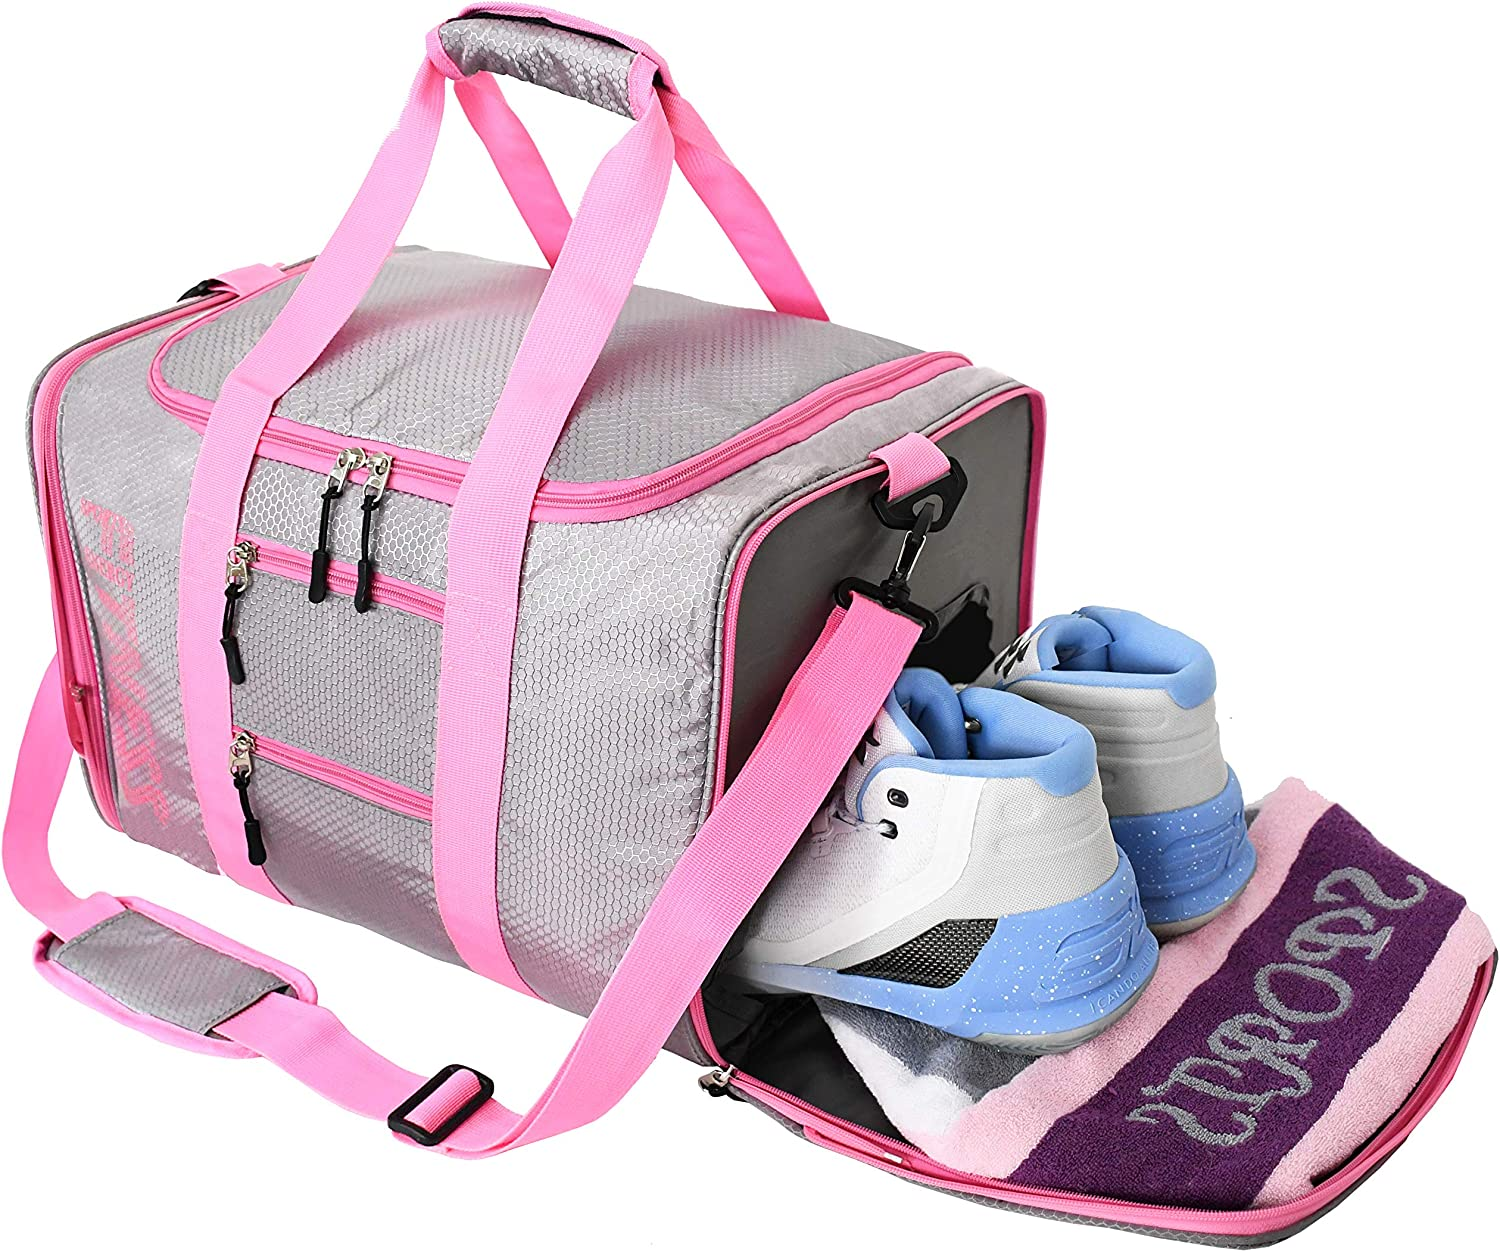 Expandable and foldable gym bag with shoe compartment gym bag with wet compartment gym bag for women and men foldable duffle bag